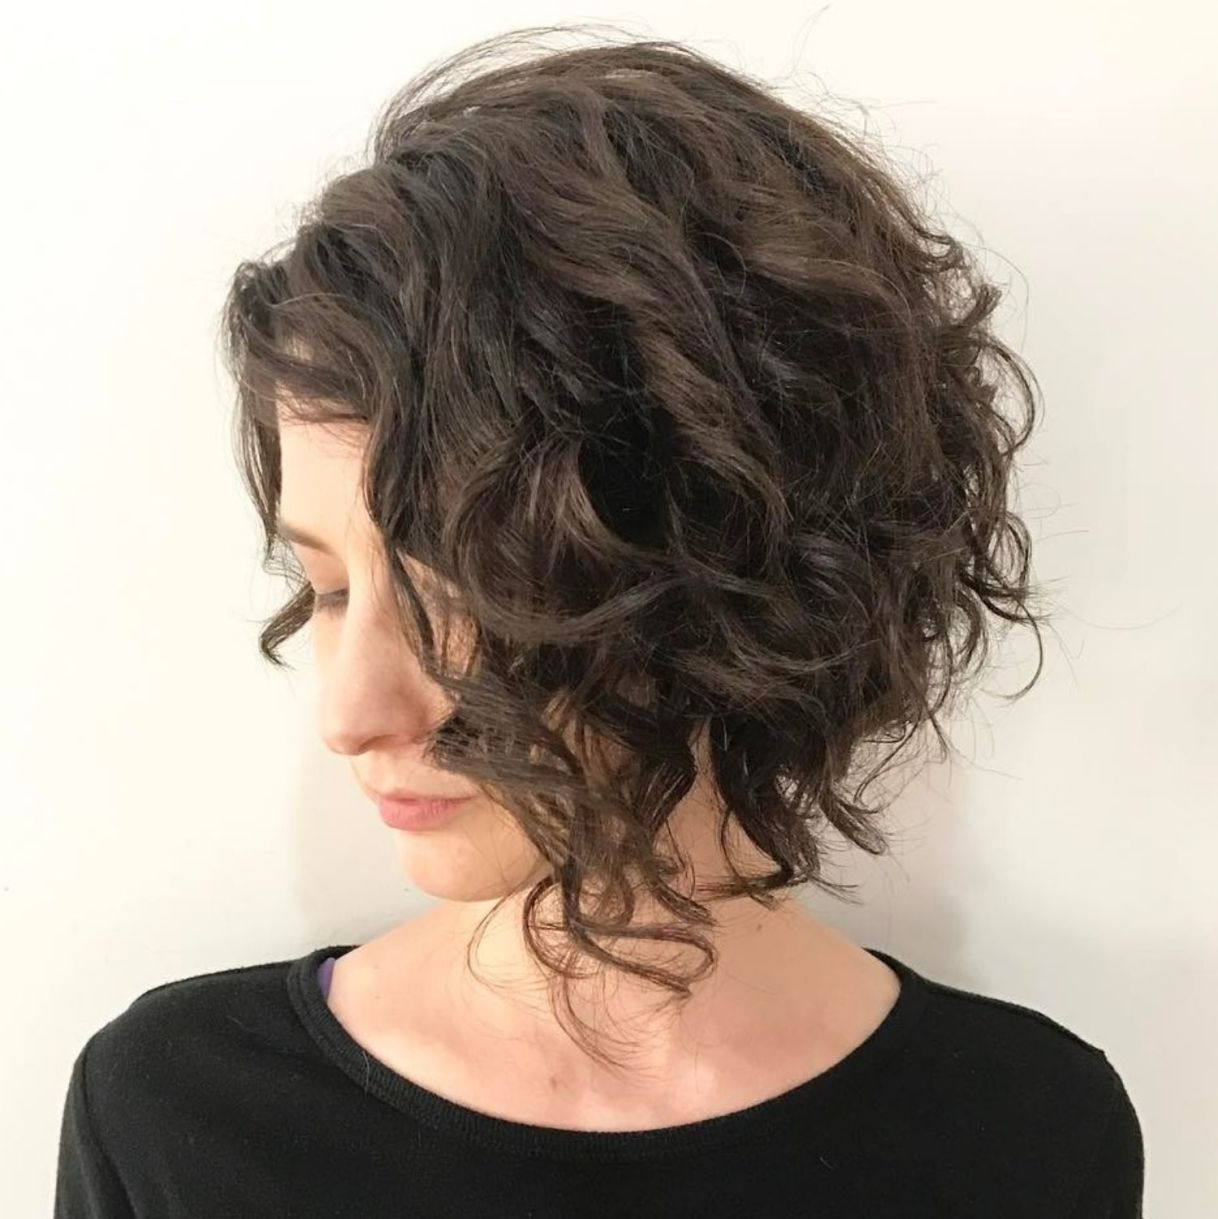 65 Different Versions Of Curly Bob Hairstyle Angled Bob Hairstyles Curly Hair Photos Wavy Bob Hairstyles